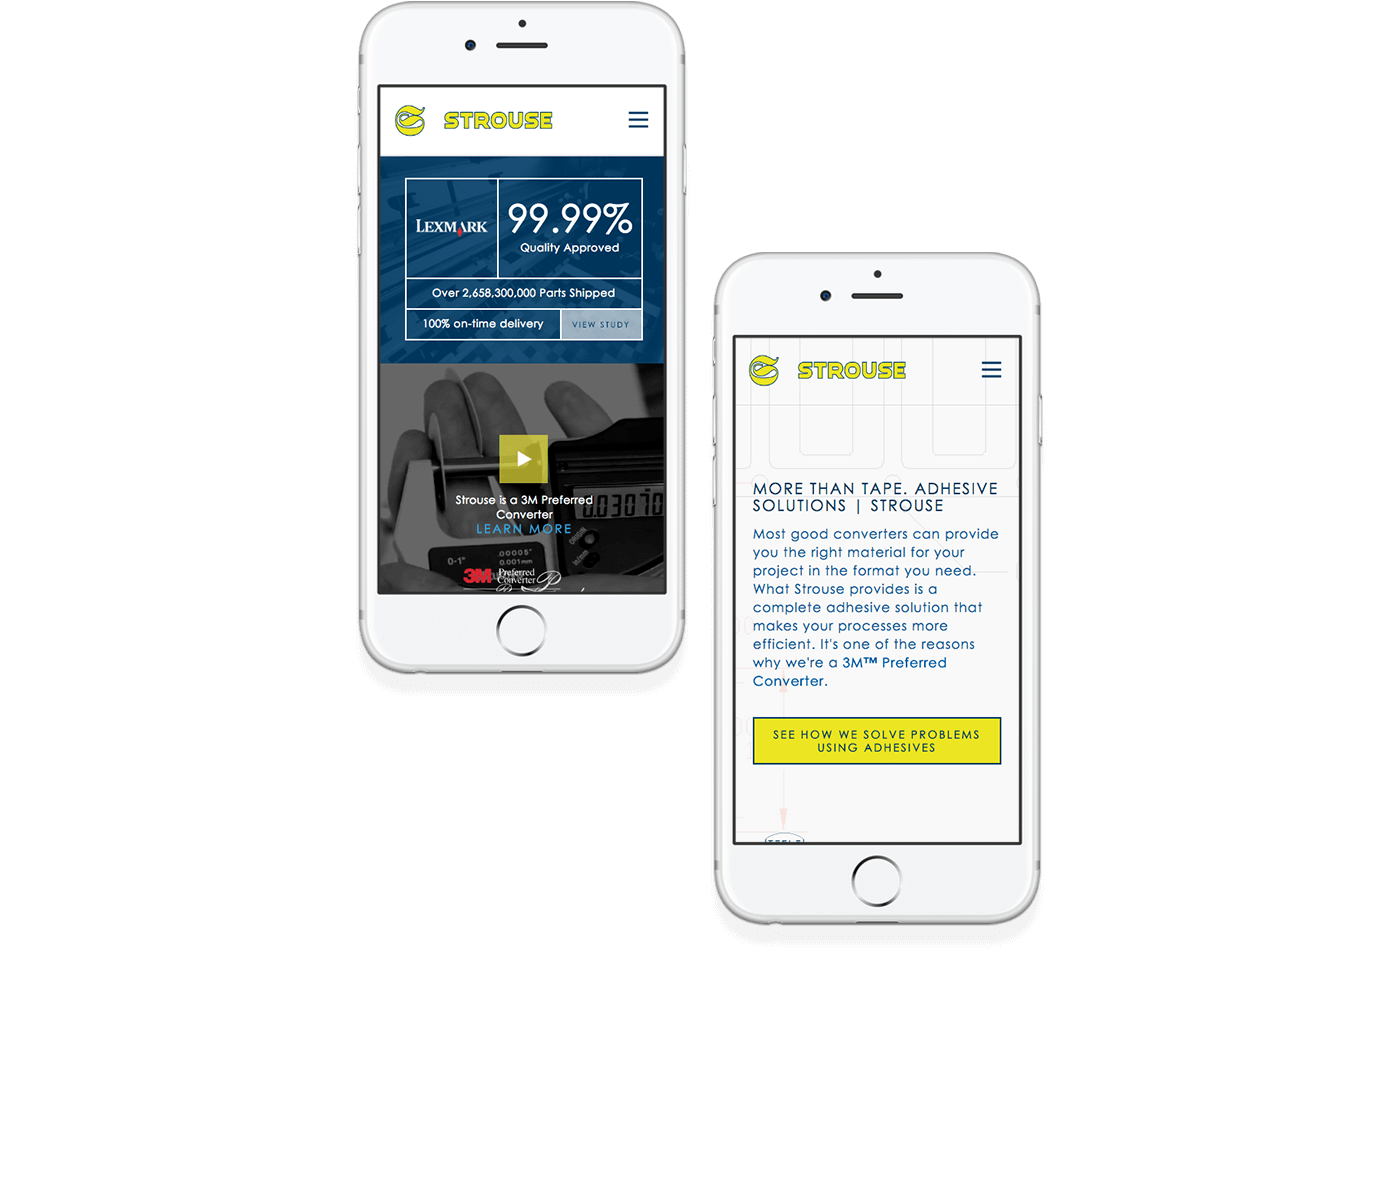 Strouse responsive website design example on two mobile phones